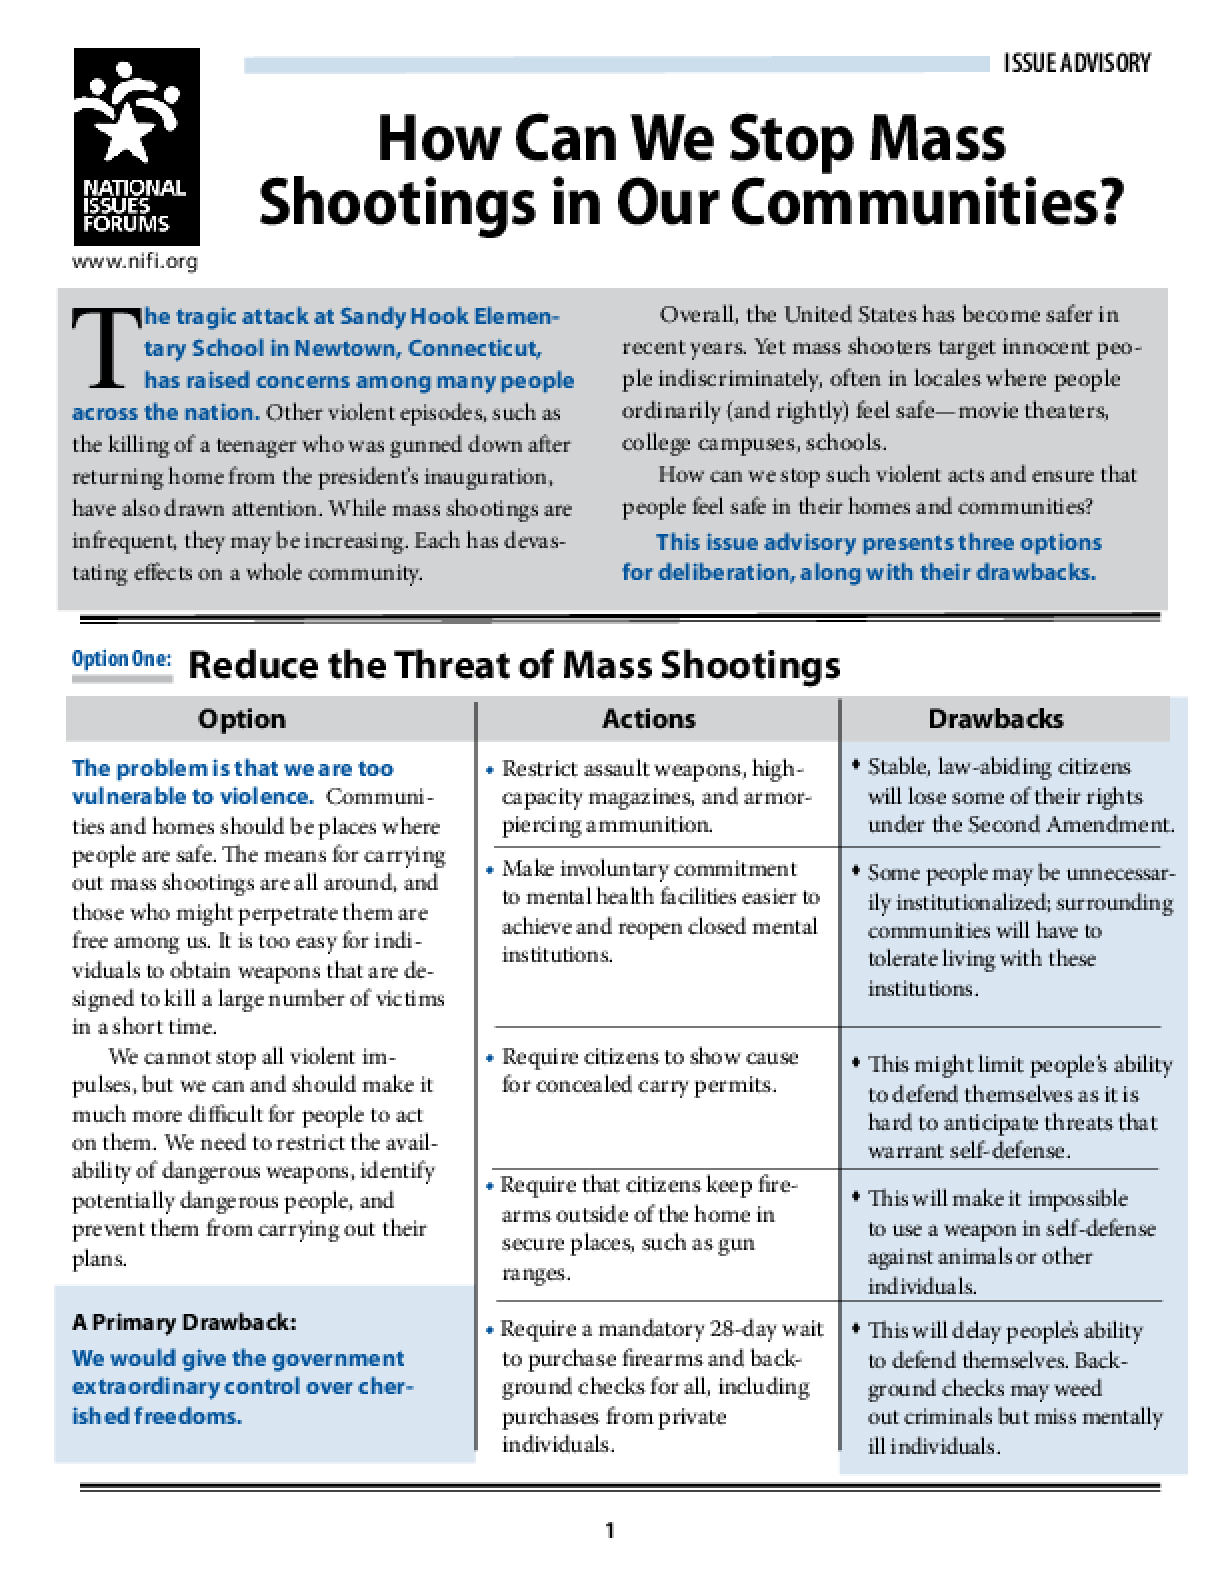 How Can We Stop Mass Shootings in Our Communities?